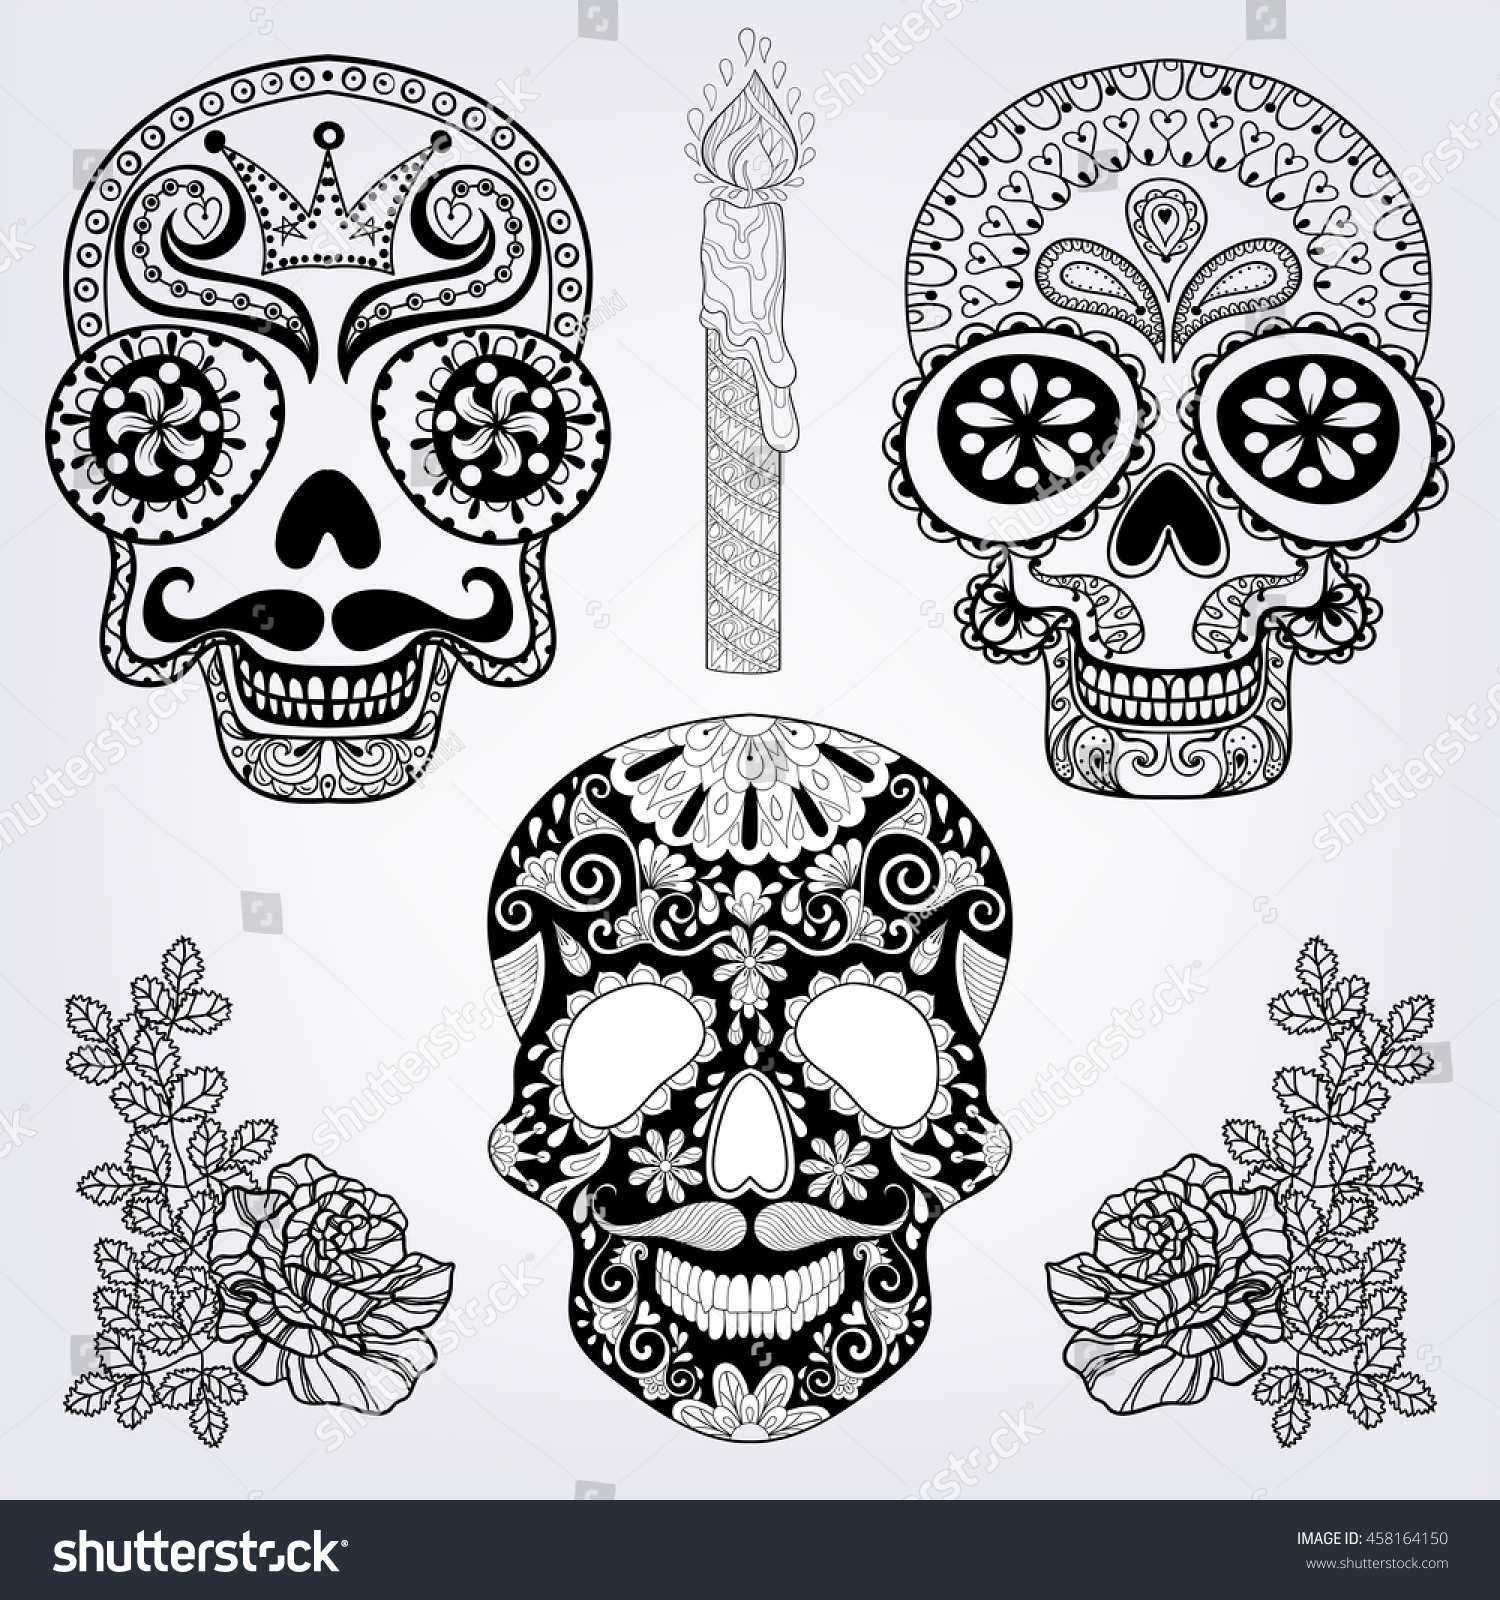 Zentangle stylized patterned Skulls set, candle, roses for Halloween ...